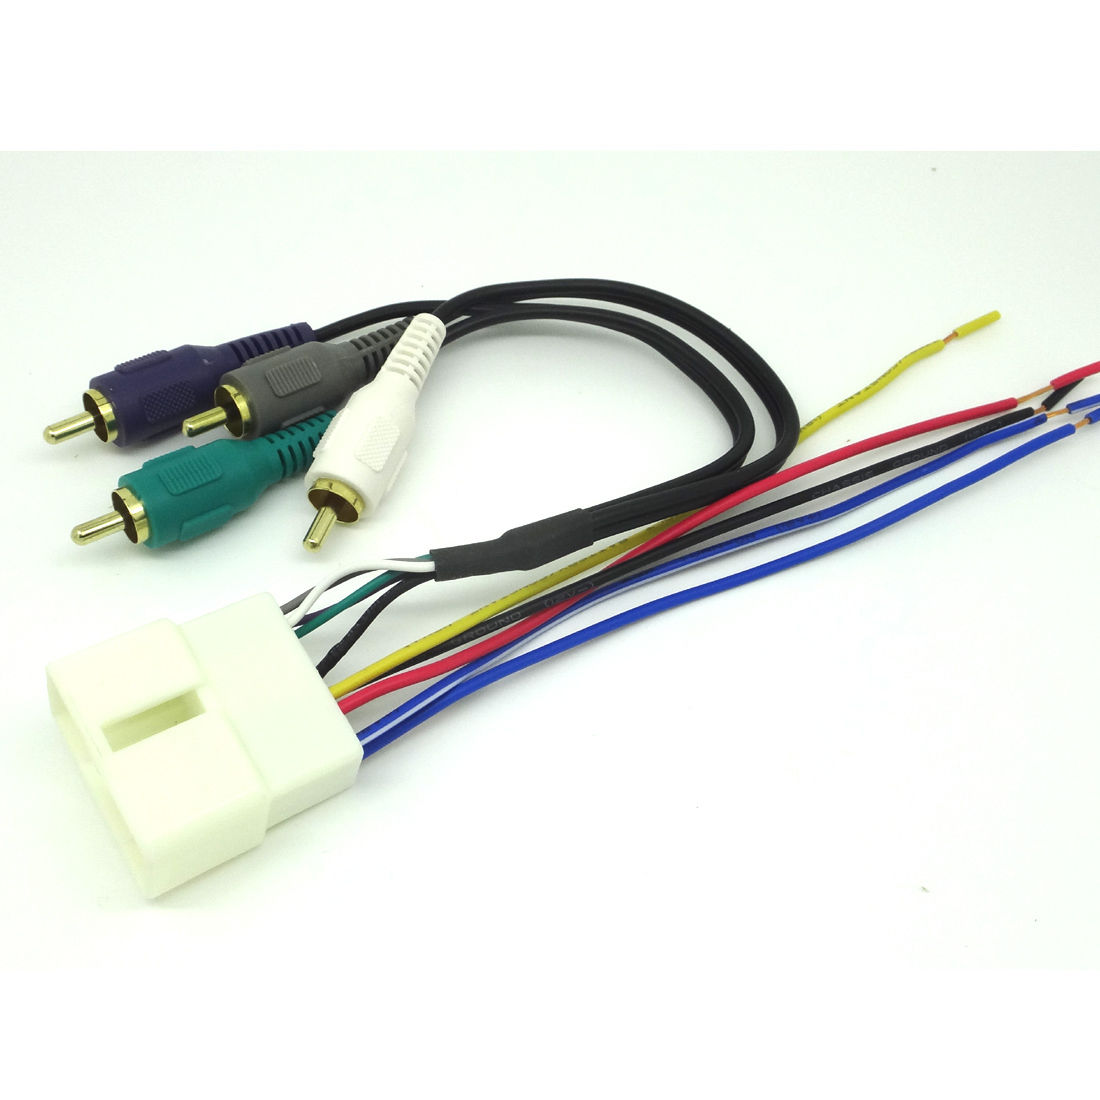 nissan radio wiring harness adapter as well radio wire harness adapter